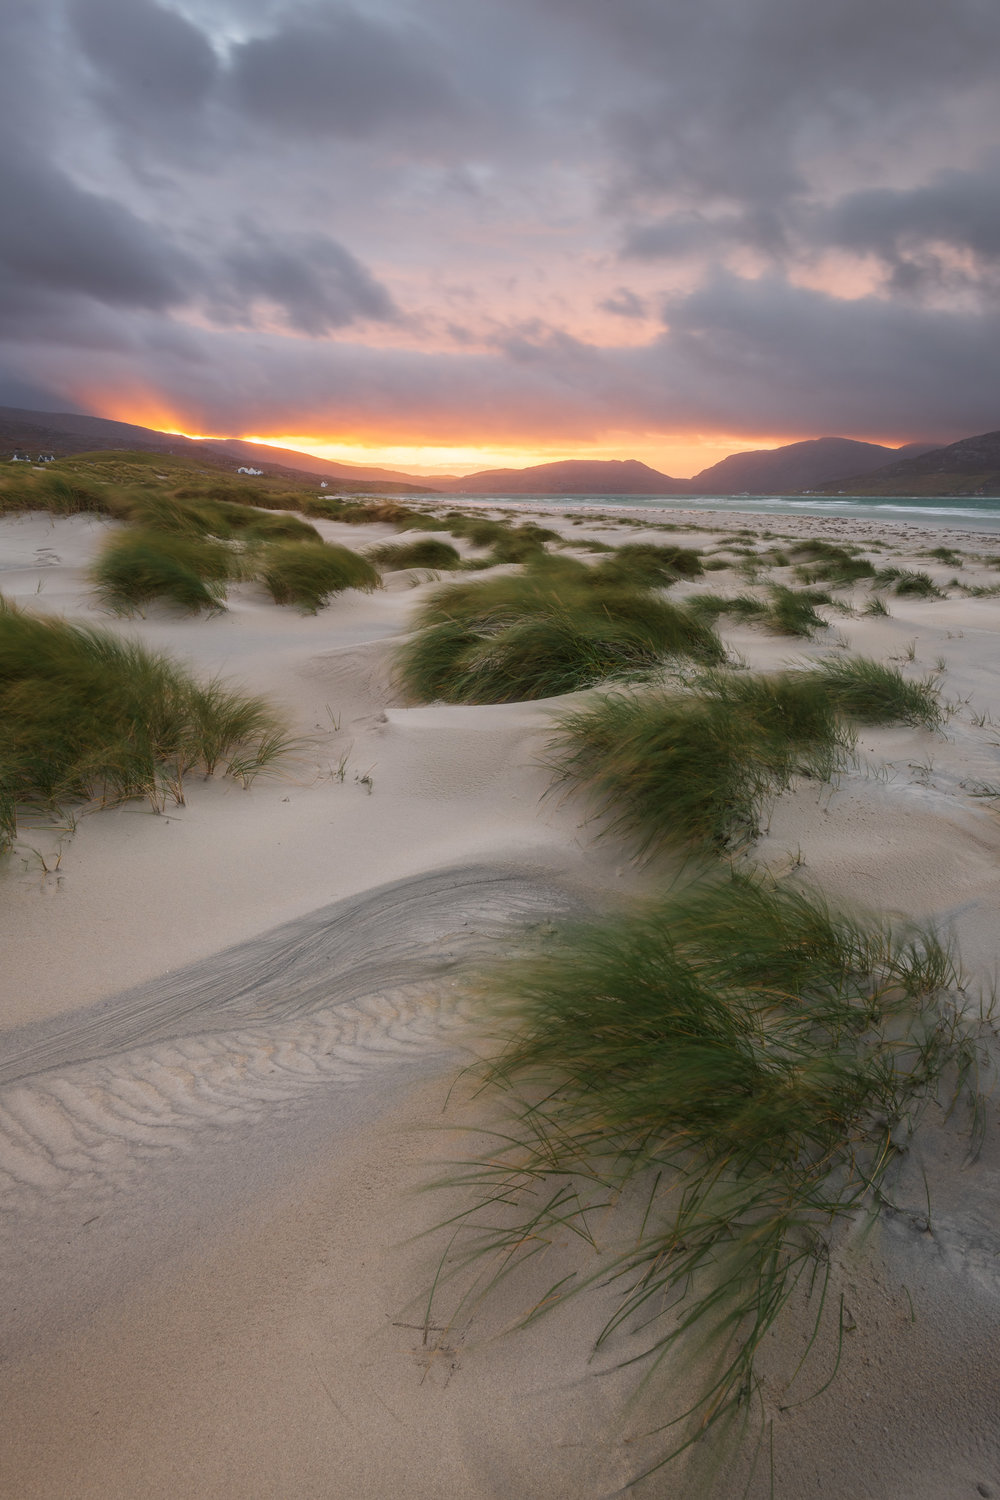 Sunrise at Luskentyre Dunes, Isle of Harris  - Nikon D850, Nikkor 16-35 mm f/4 at 18 mm, f/13, 1 second at ISO 100, Lee Filters Circular ND Grad.